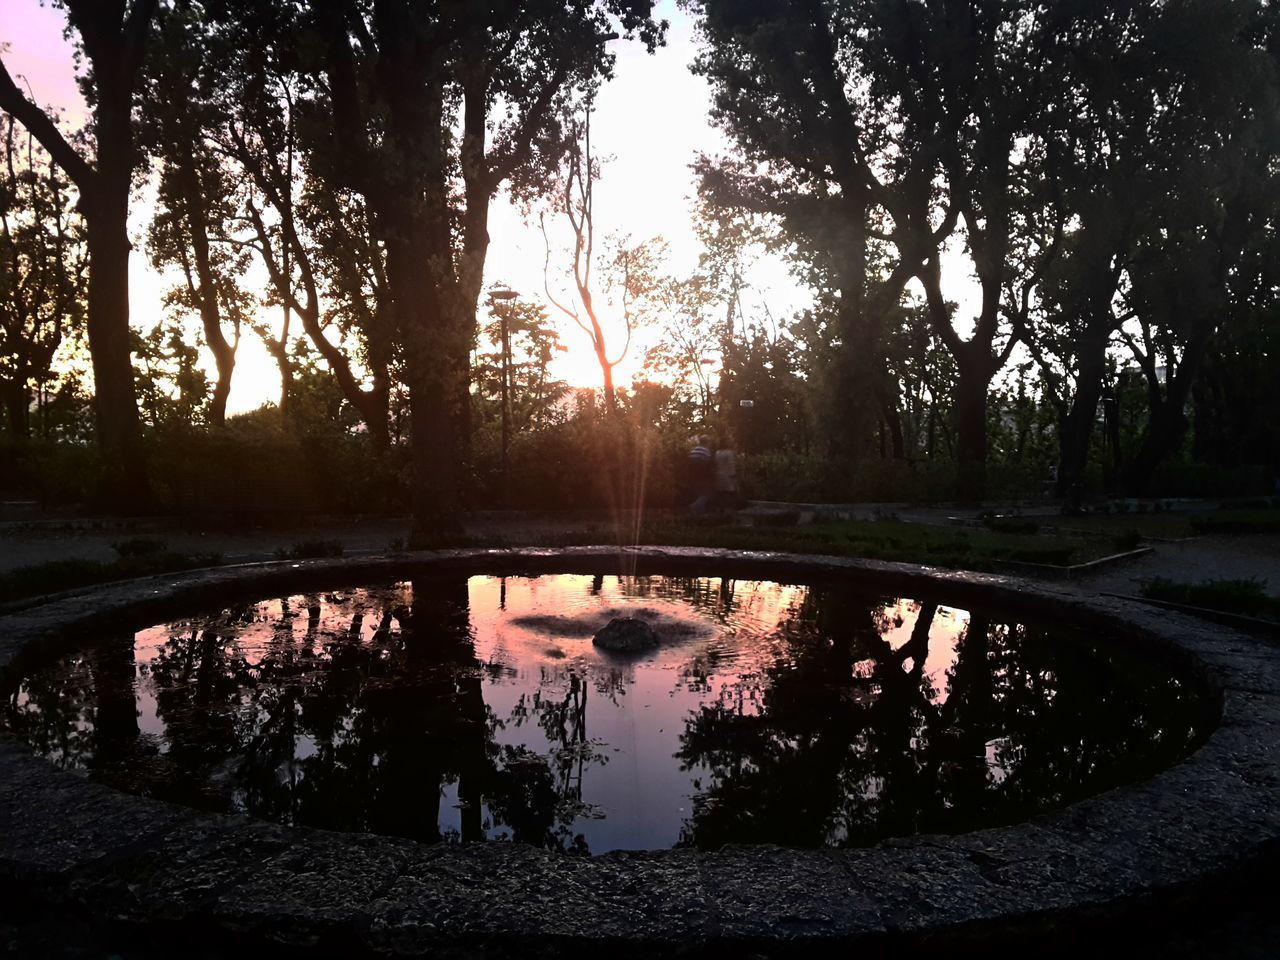 Reflection Water Tree Lake Silhouette Nature Sunset Outdoors No People Reflecting Pool Beauty In Nature Growth Sky Puddle Forest Day Scenics Flood Tree Area